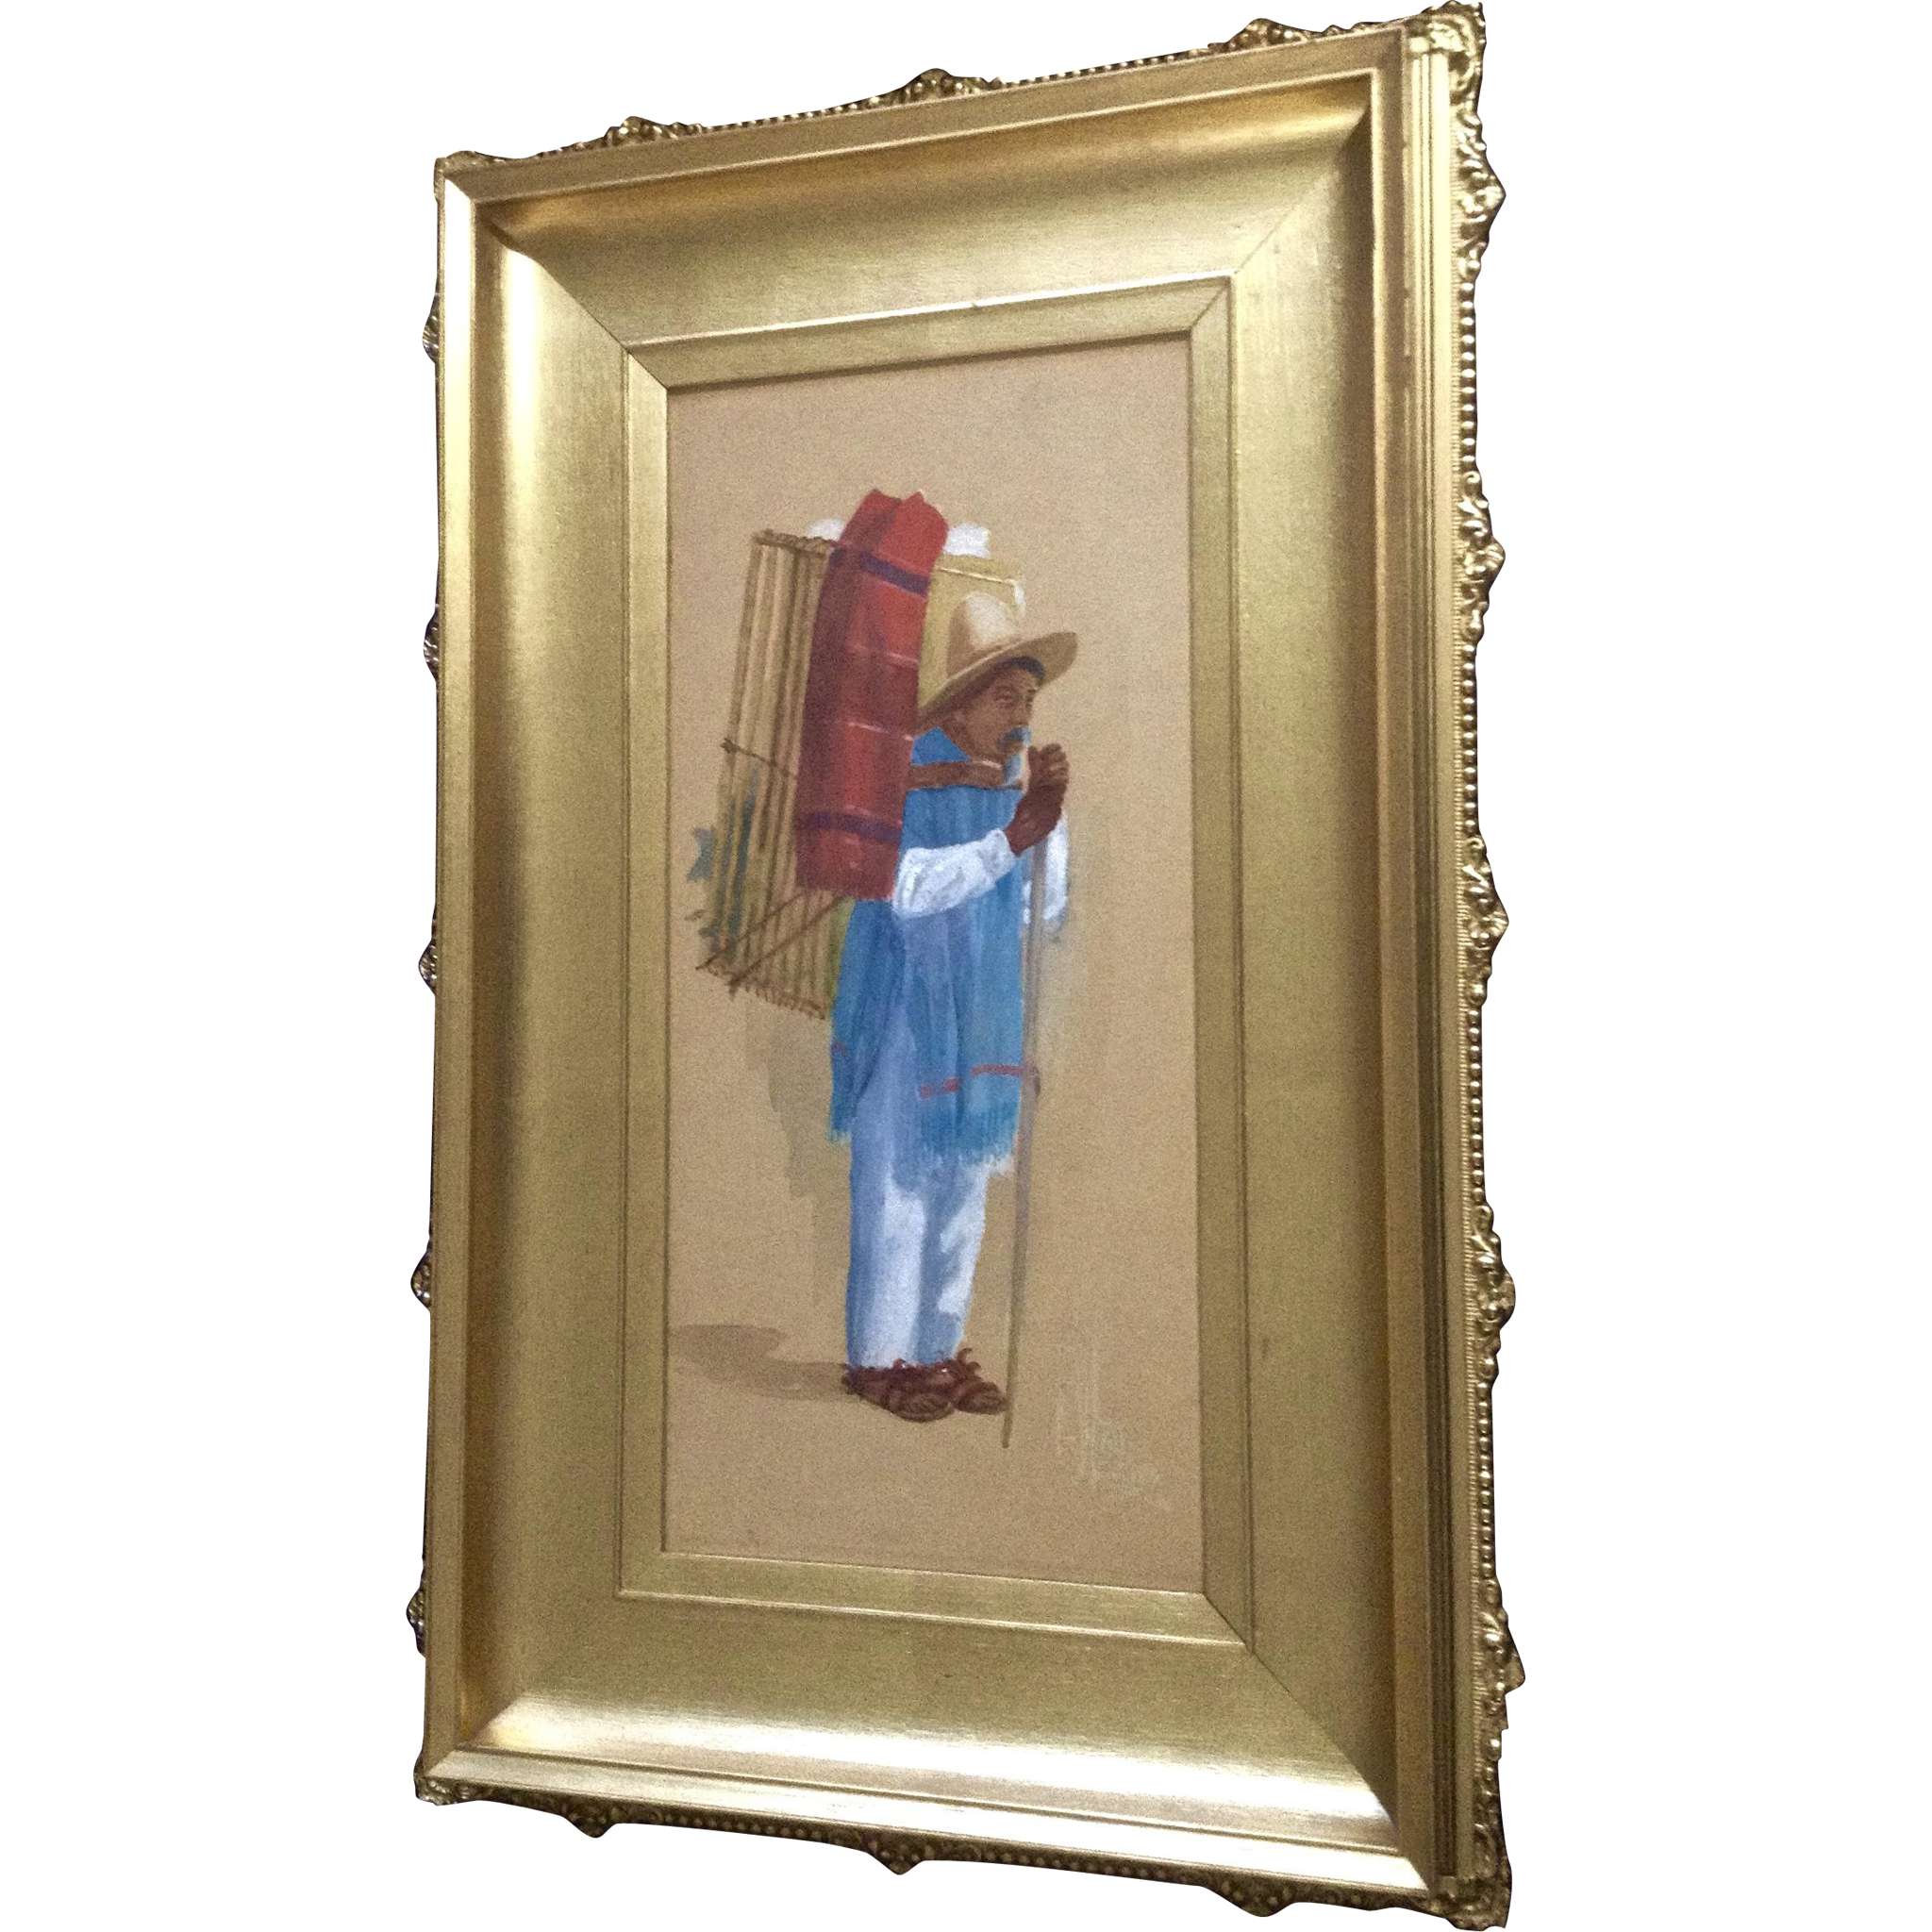 South american peddler in gold and black frame watercolor painting south american peddler in gold and black frame watercolor painting signed by mexico artist jeuxipadfo Image collections